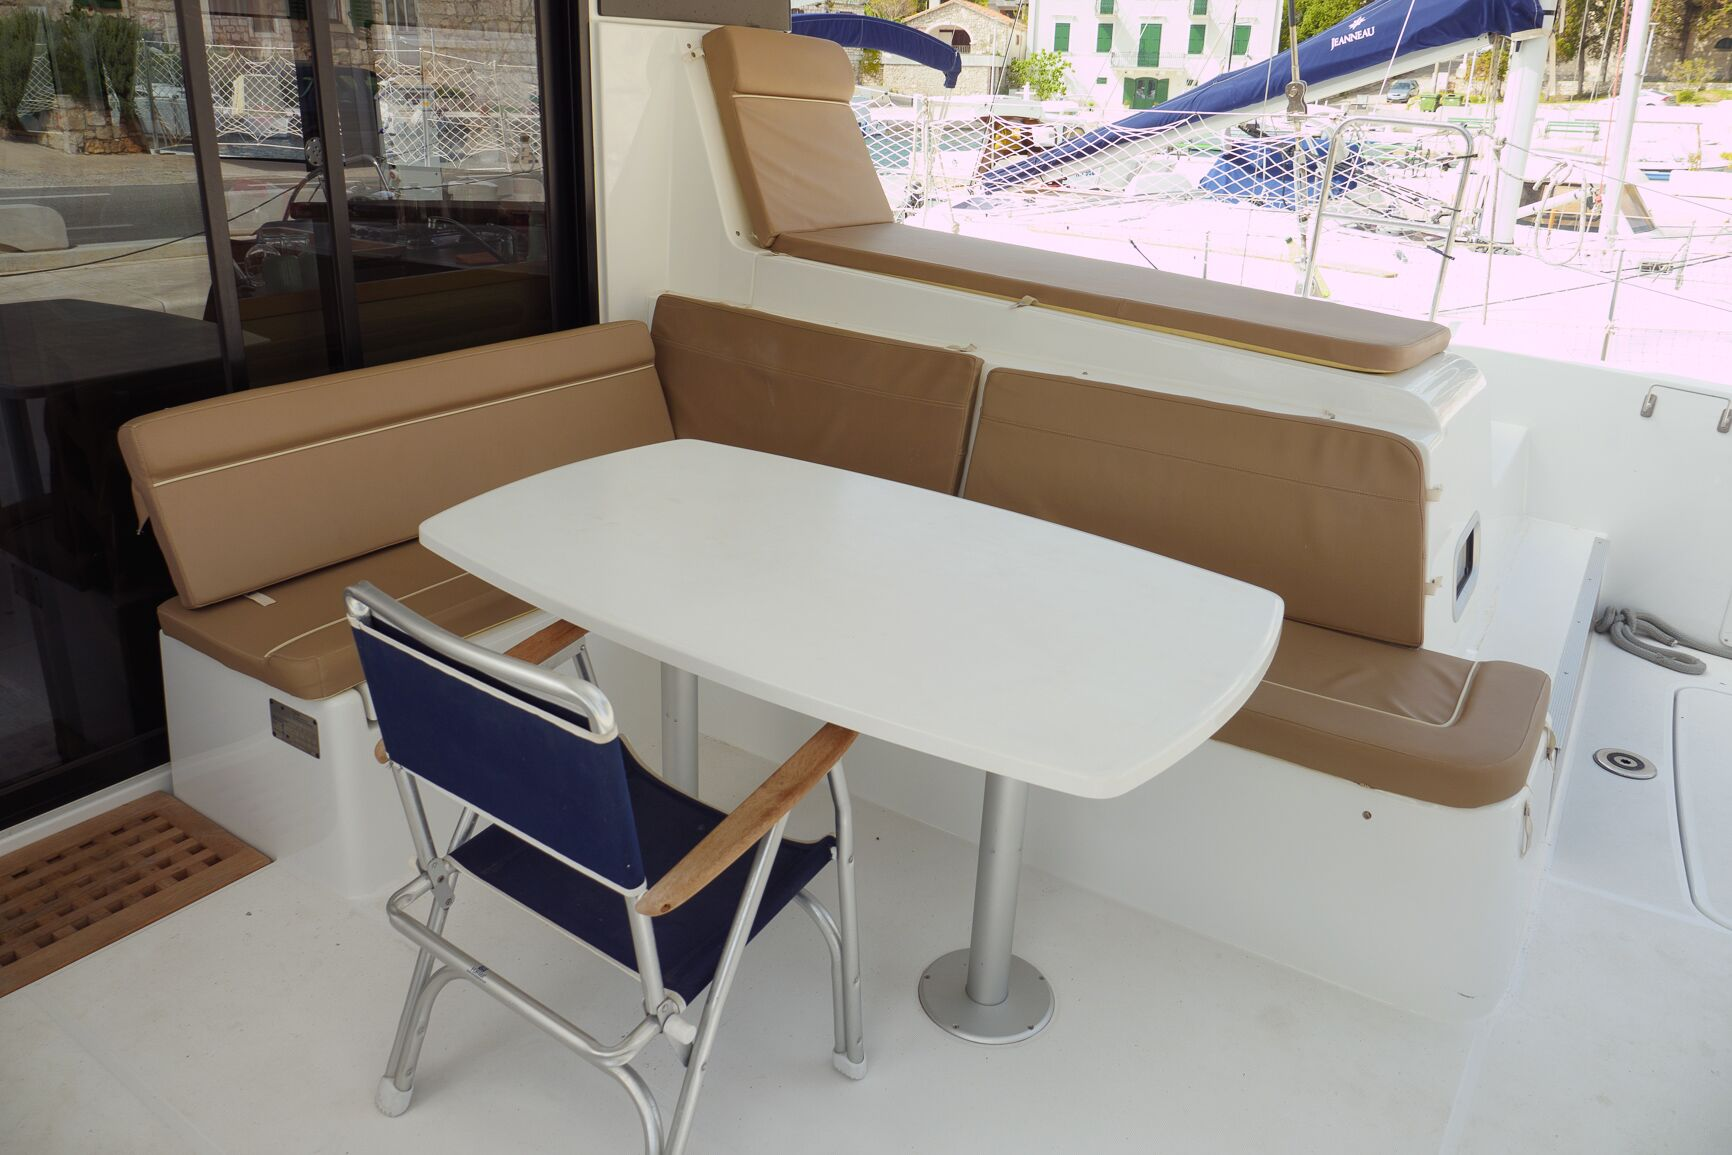 Lagoon 42 (GALAPAGOS) Exterior - deck (photo taken 2019) - 18